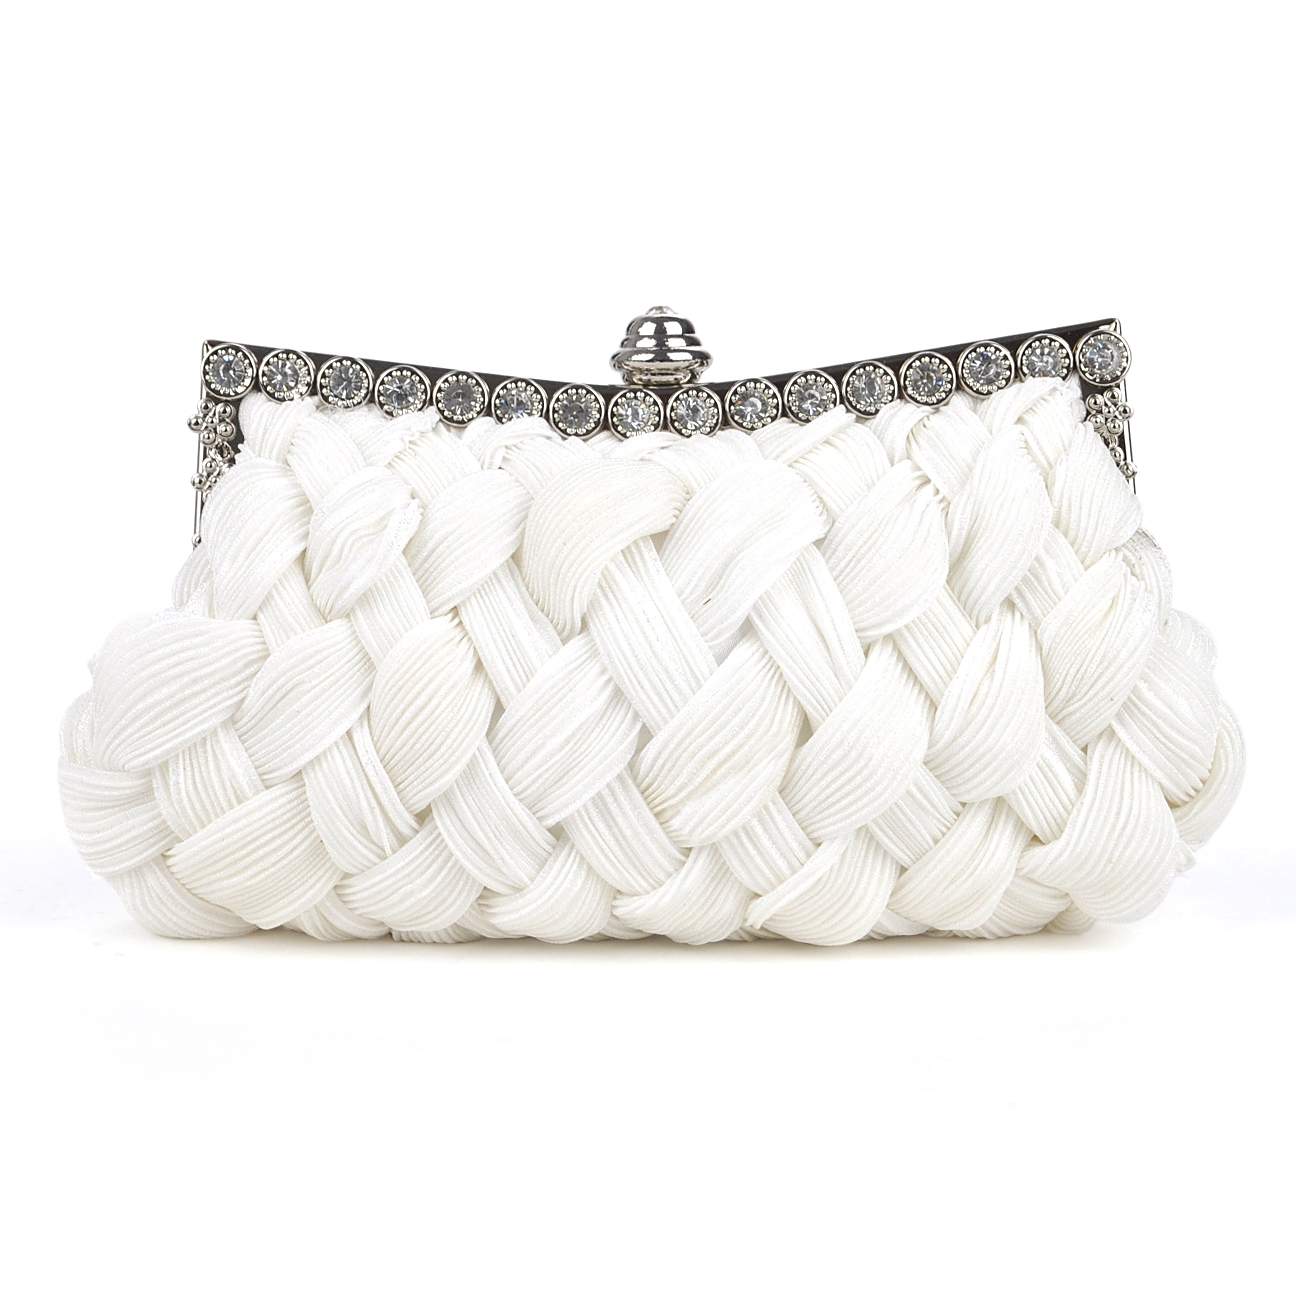 TopTie Woven Pattern Satin Evening Bag - White, Gift Idea